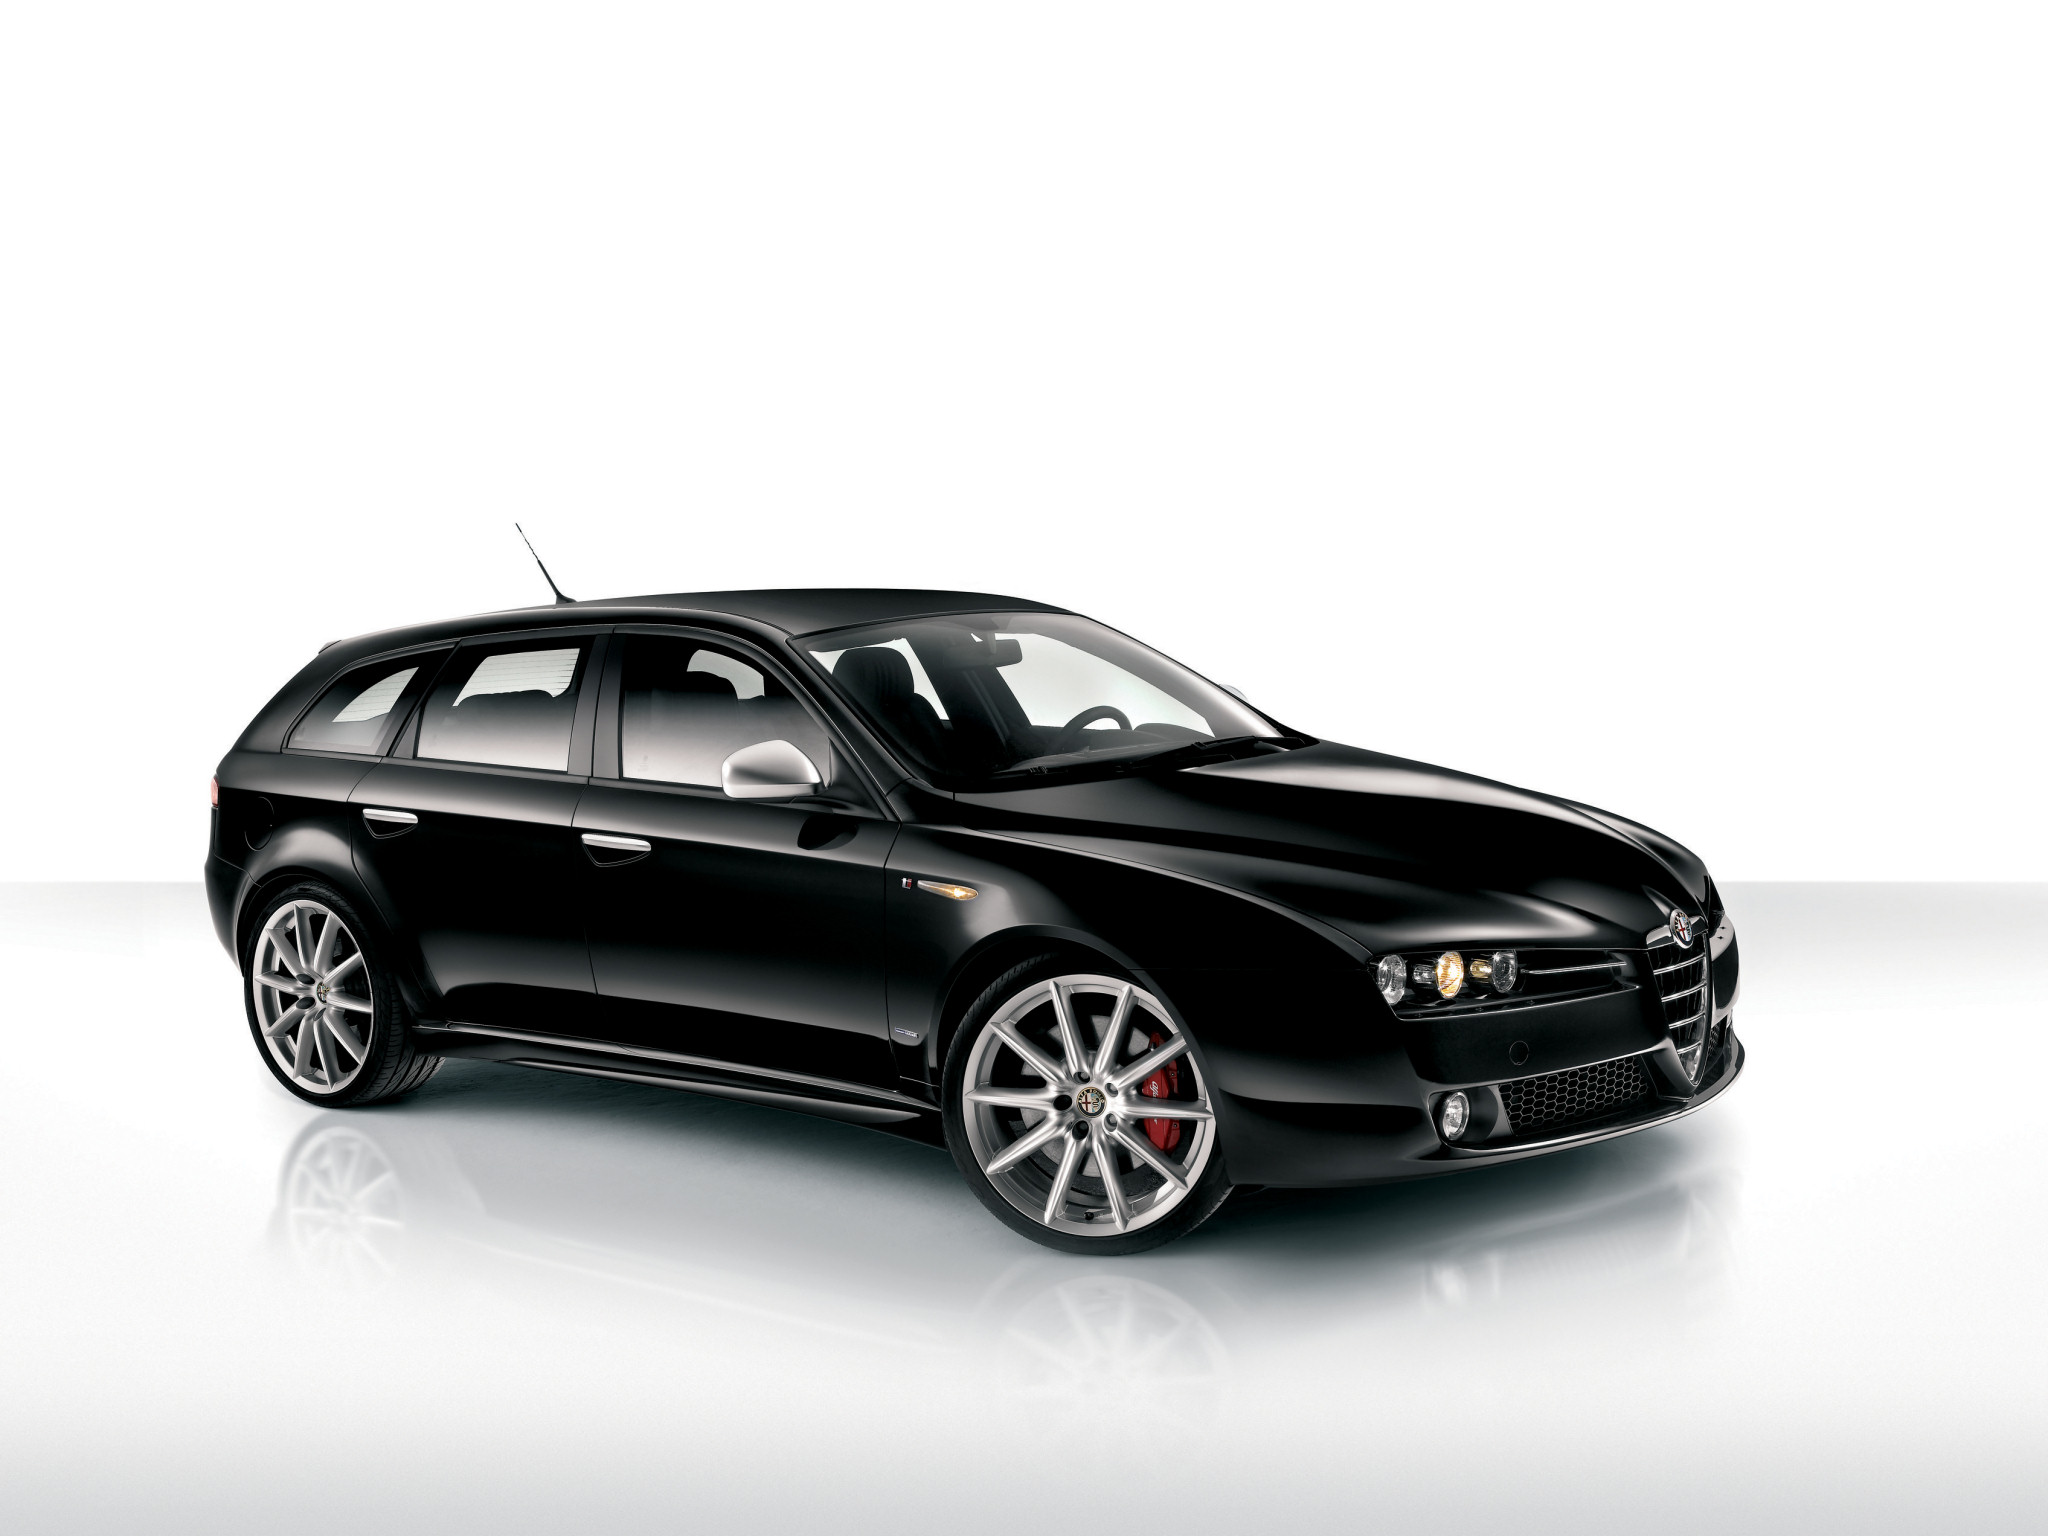 alfa romeo 159 sw essais fiabilit avis photos prix. Black Bedroom Furniture Sets. Home Design Ideas